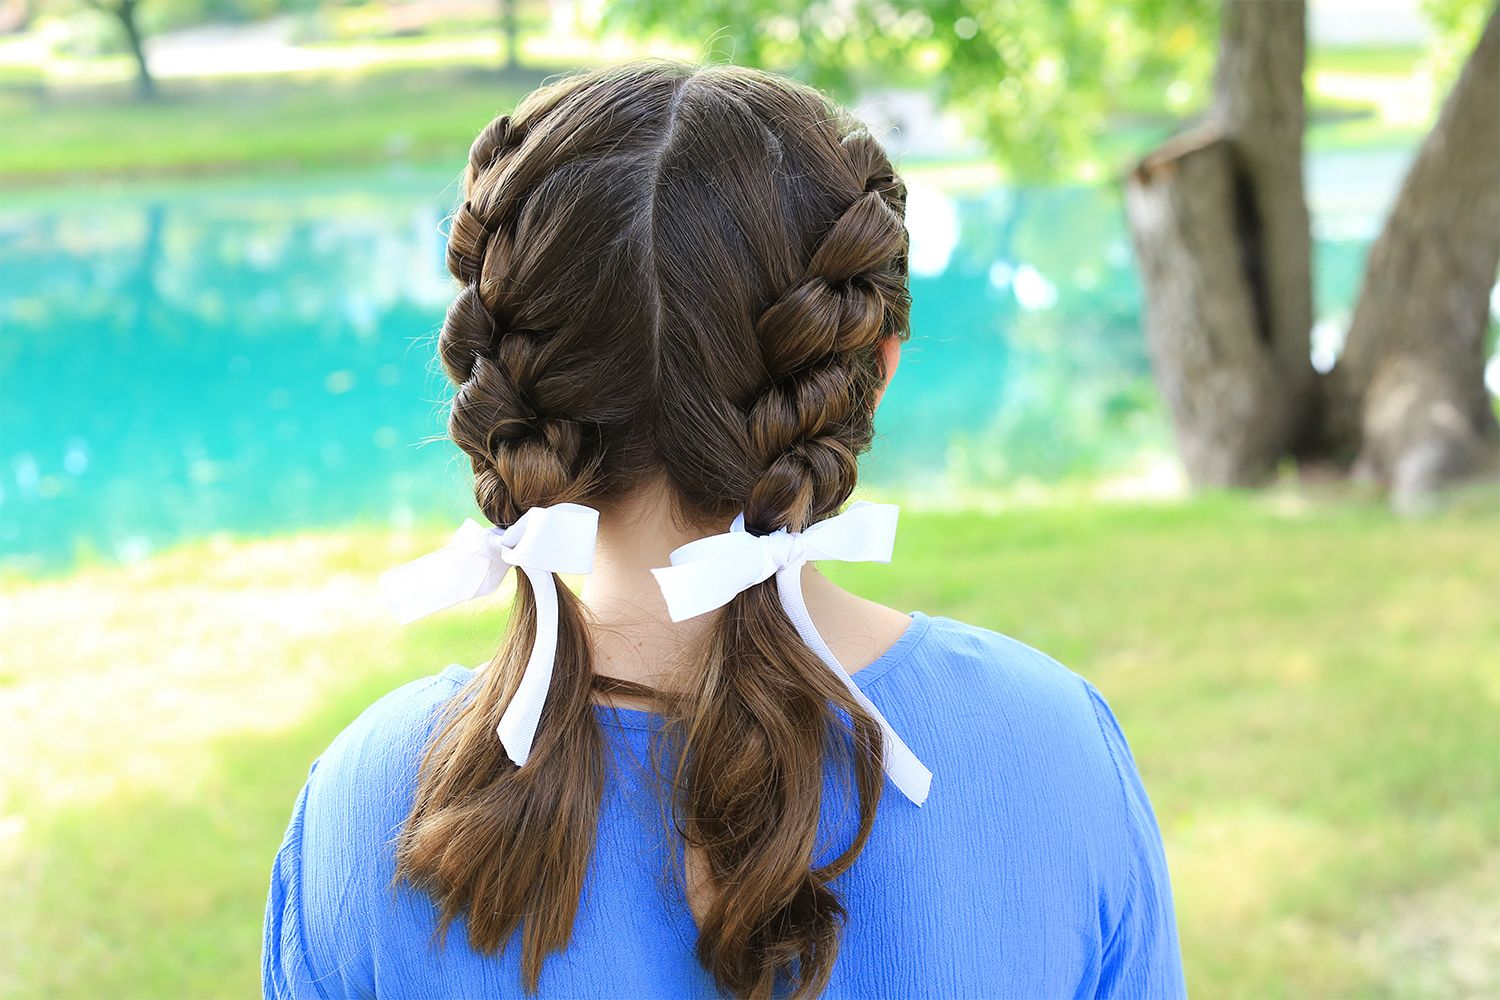 Shoelace braid cute girls hairstyles hair pinterest girl